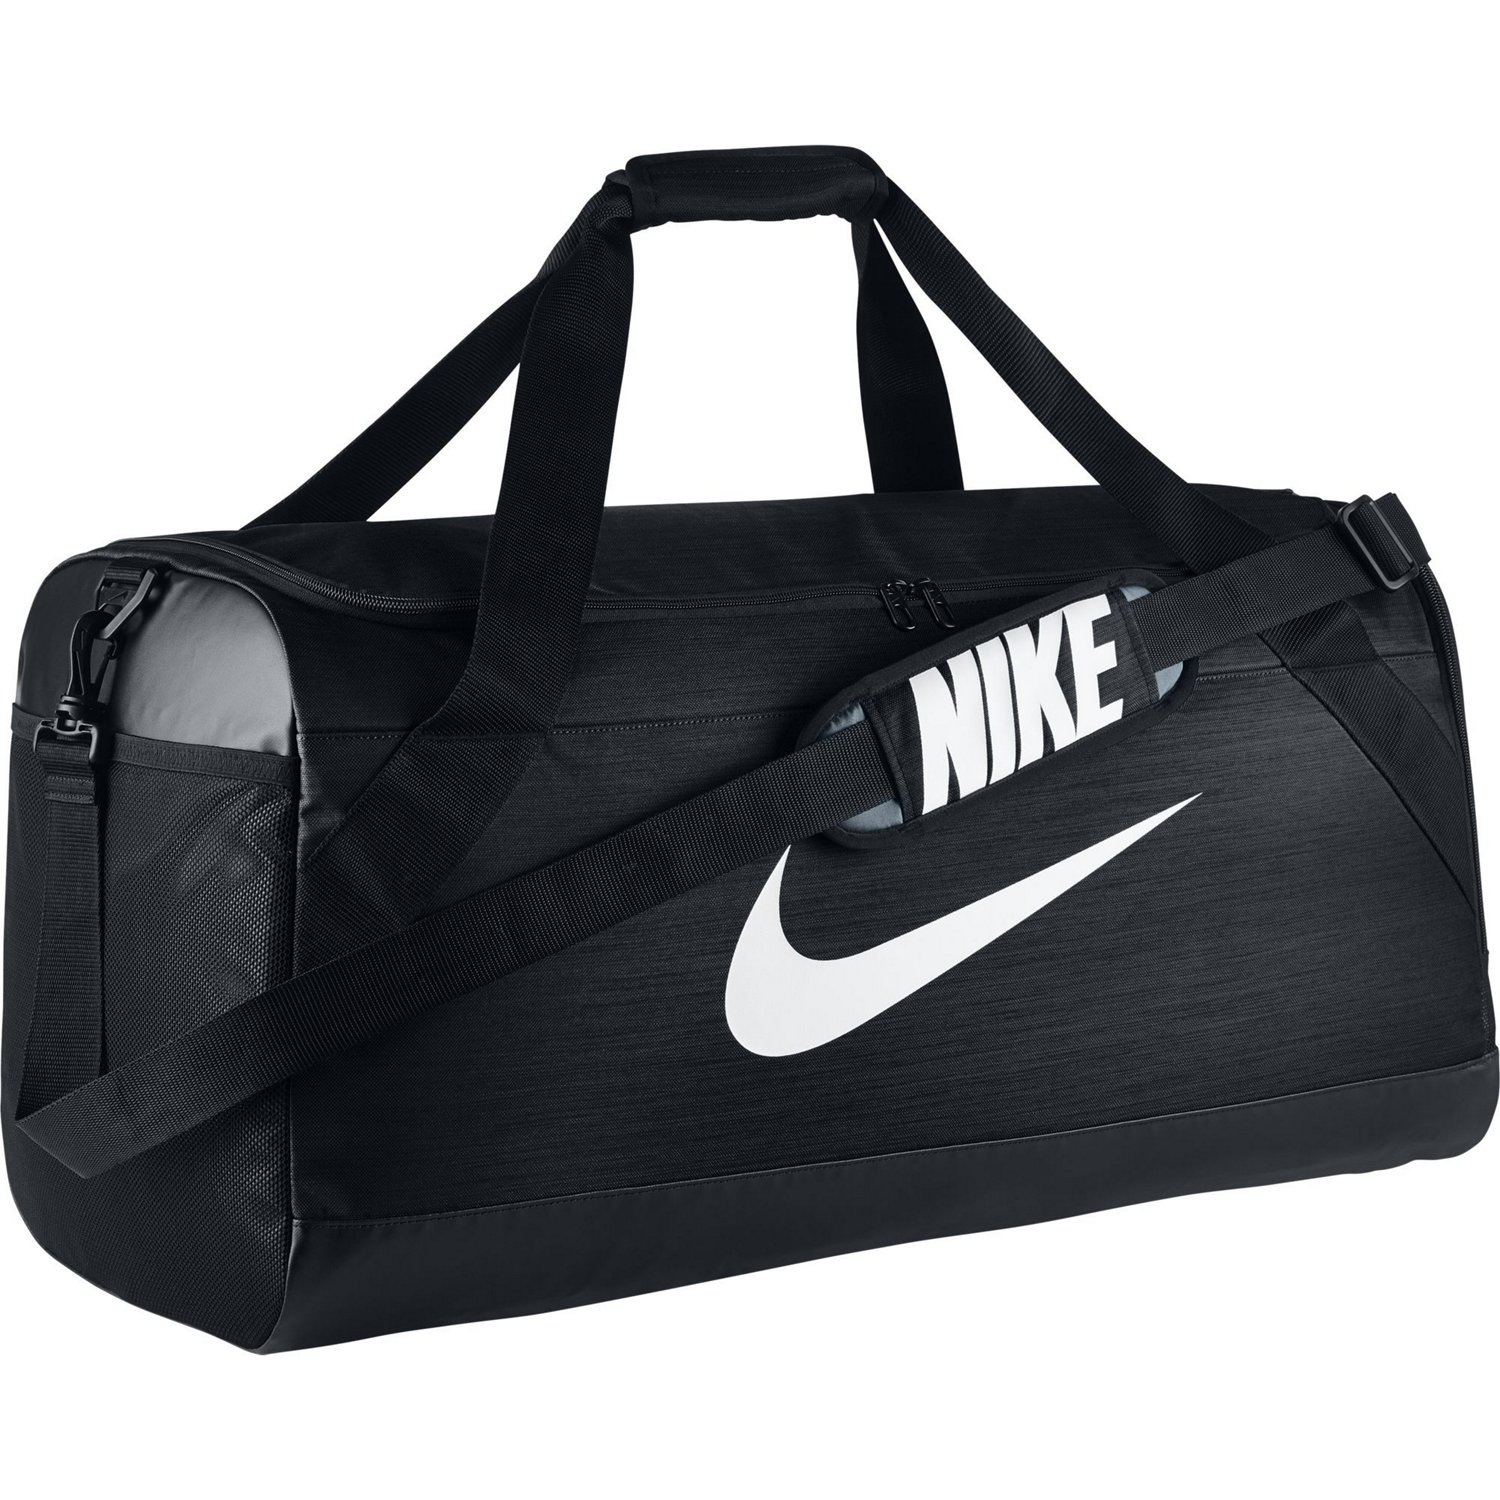 Display product reviews for Nike Brasilia Large Duffel Bag e8c78135d39d2